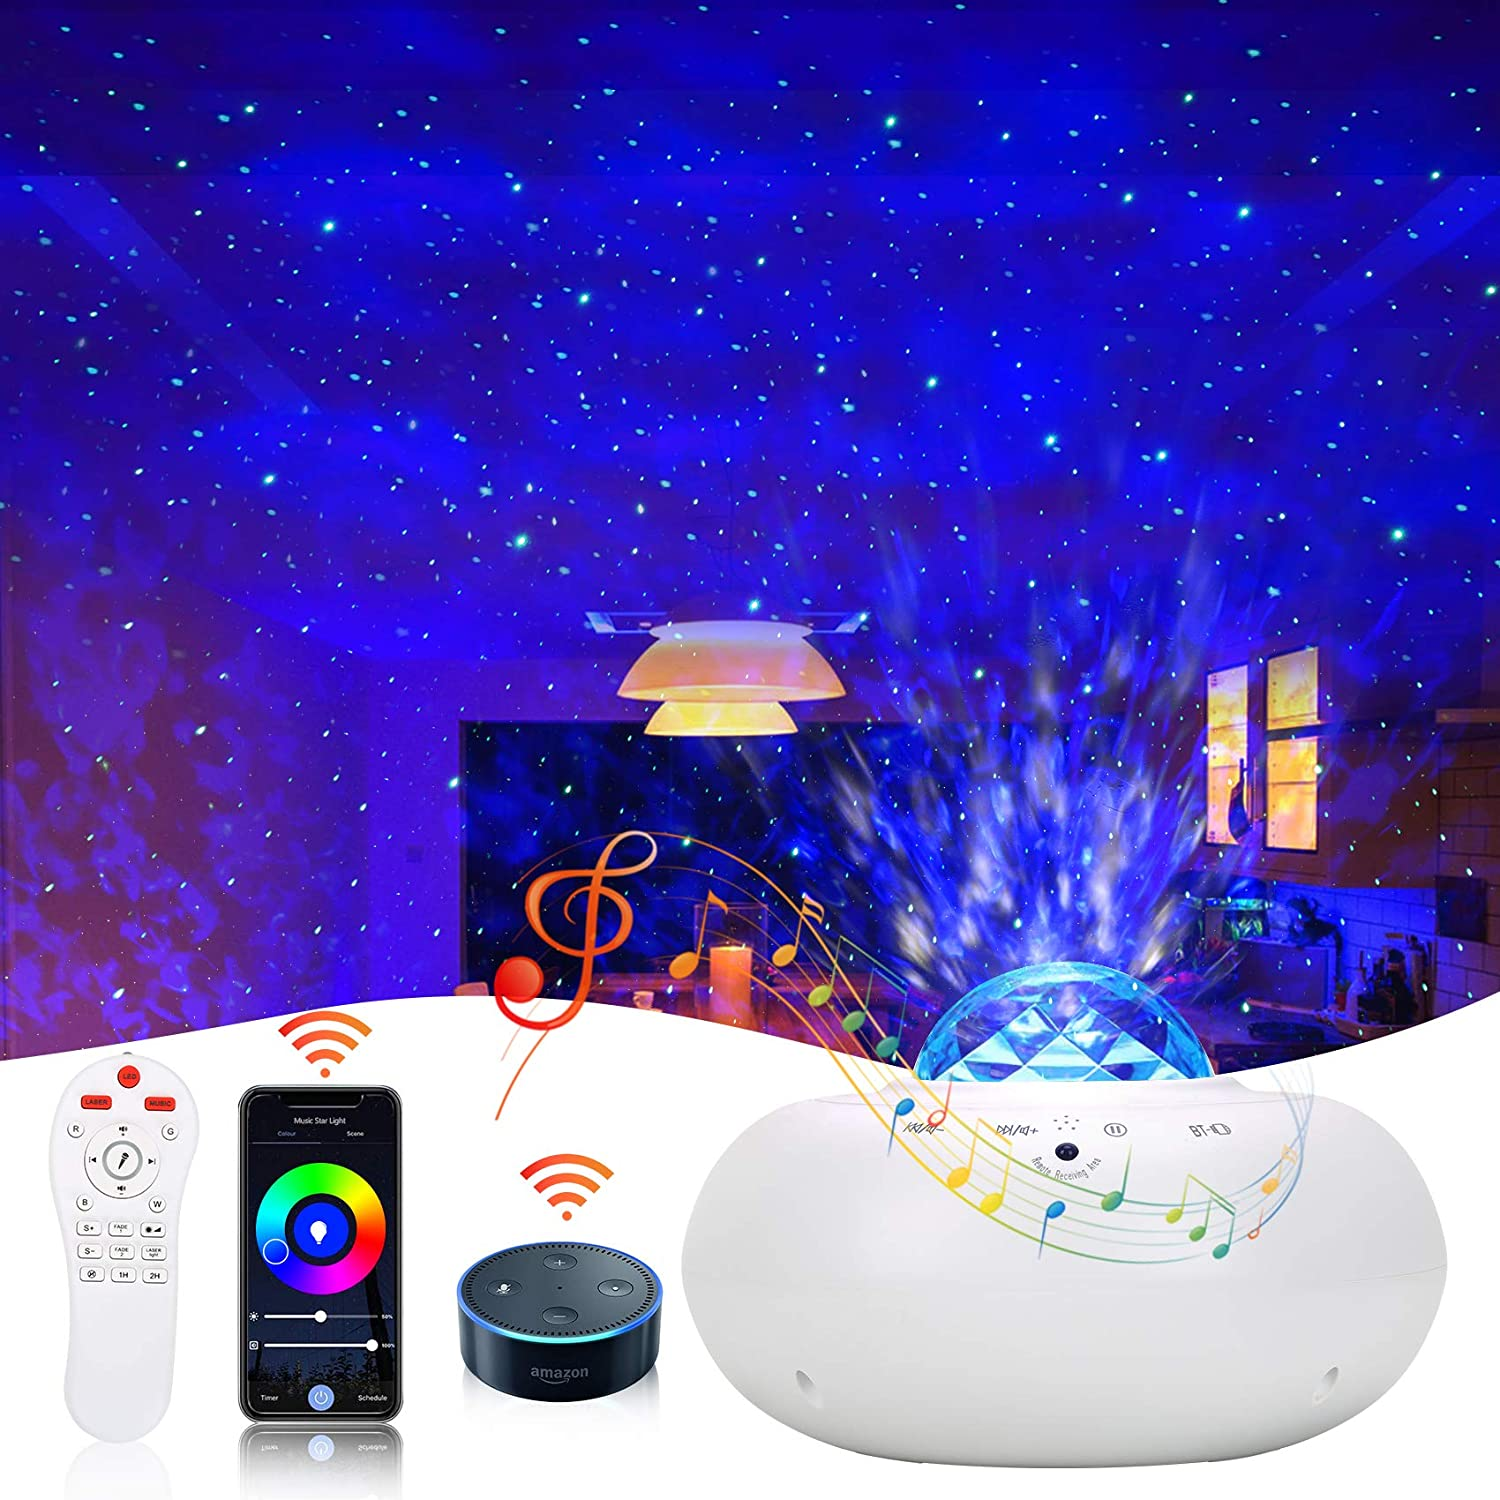 Star Projector, Syslux Smart Galaxy Projector Works with Alexa, Google Assistant, Smart App Ocean Wave Night Light Projector with LED Nebula Galaxy Remote Control Music Speaker for Bedroom Party Decor